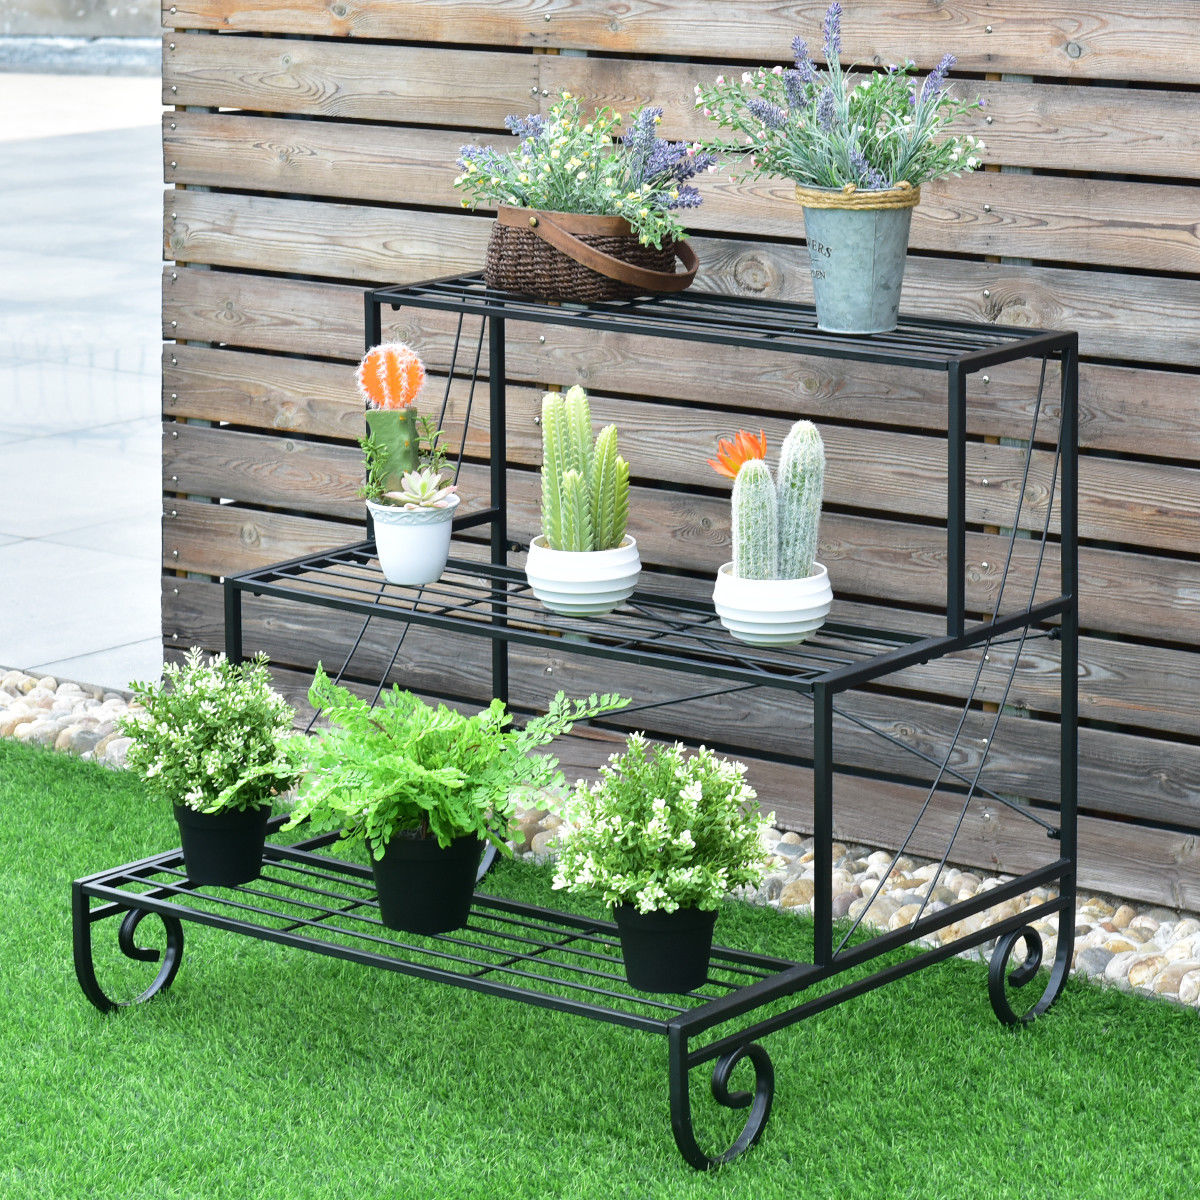 Costway 3 Tier Outdoor Metal Plant Stand Flower Planter Garden Display Holder Shelf Rack by Costway